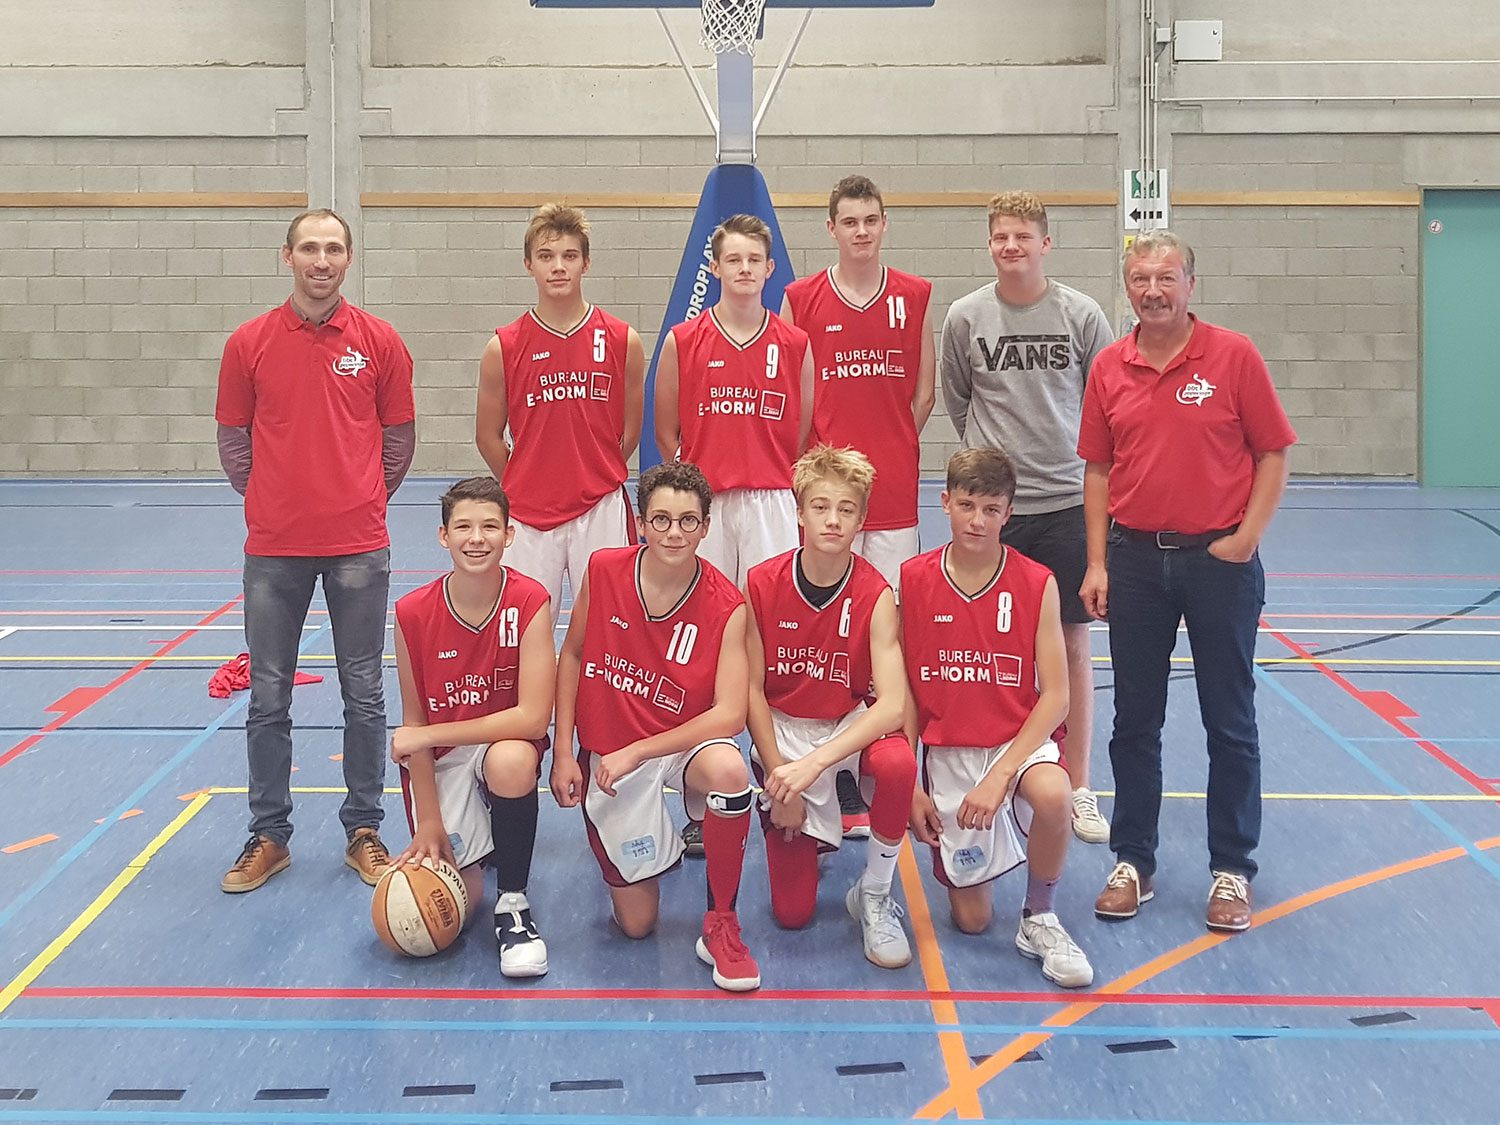 BBC Poperinge J16 A vs Phantoms Basket Boom J16 A: 46-146